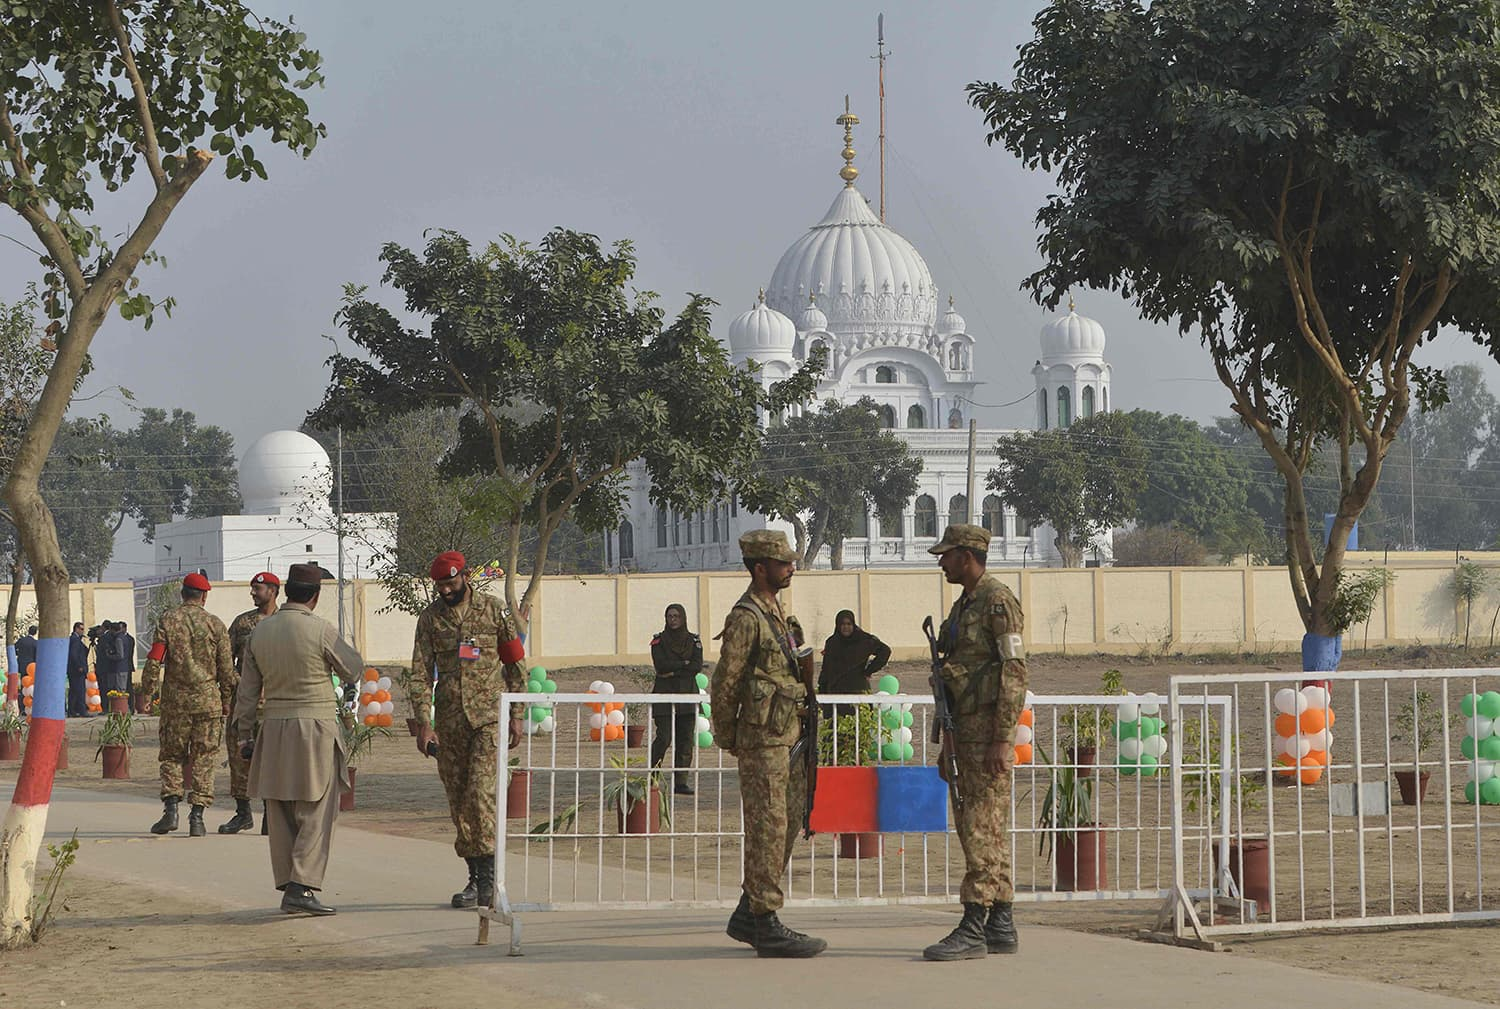 Pakistan Army soldiers gather in front of Kartarpur Gurdwara Sahib during the groundbreaking ceremony.—AFP